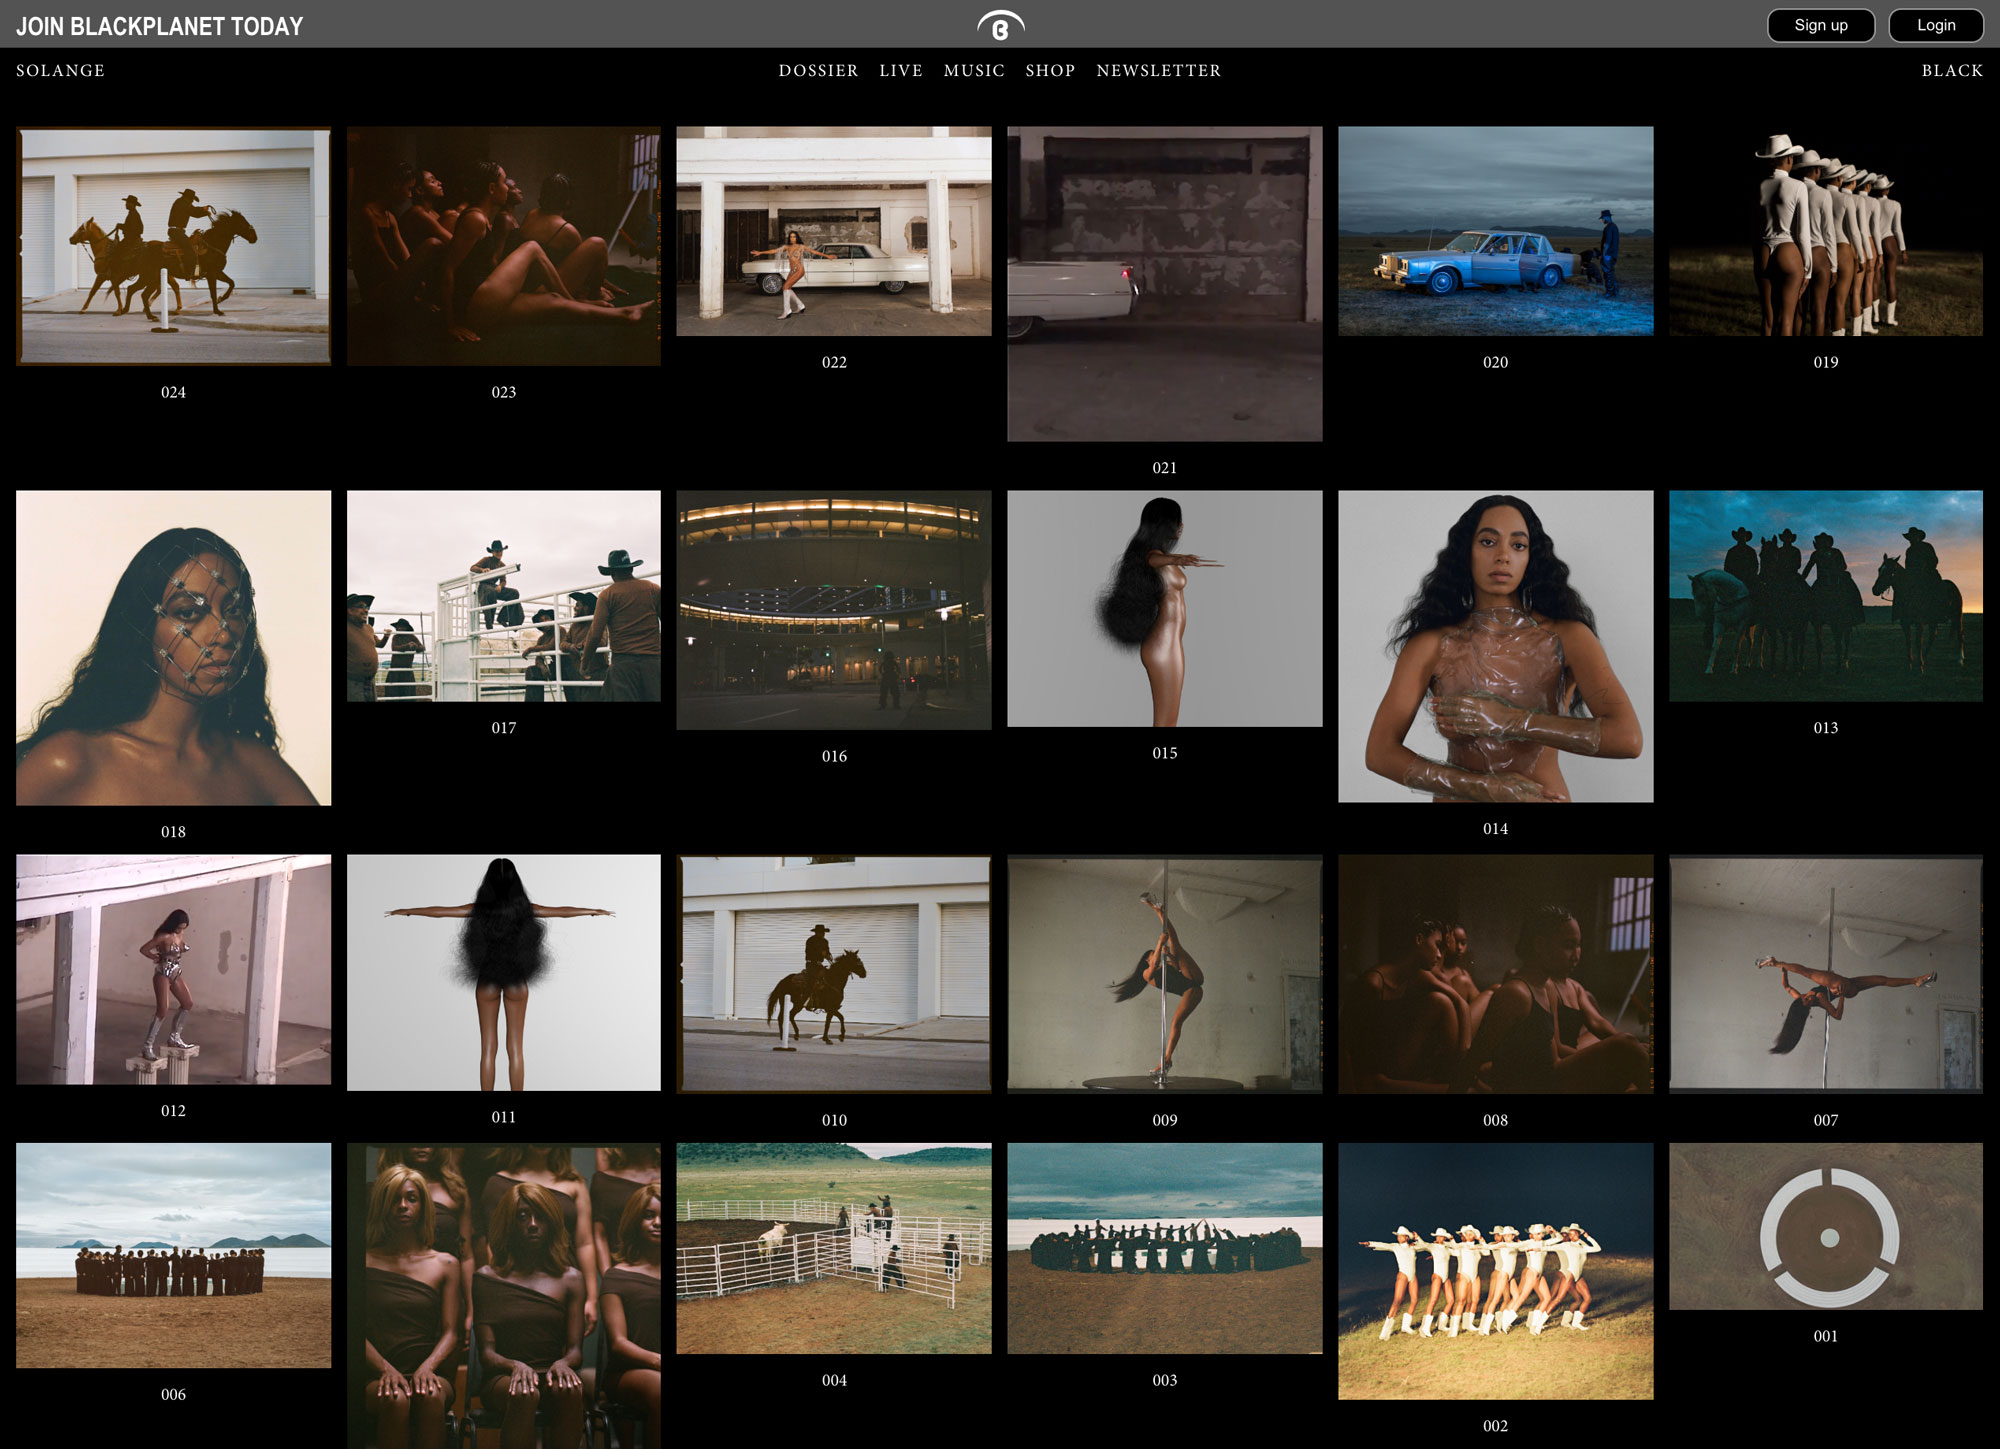 "Solange's profile page on BlackPlanet.com during the launch of her latest album, ""When I Get Home"" featuring various thumbnails from her visual album"